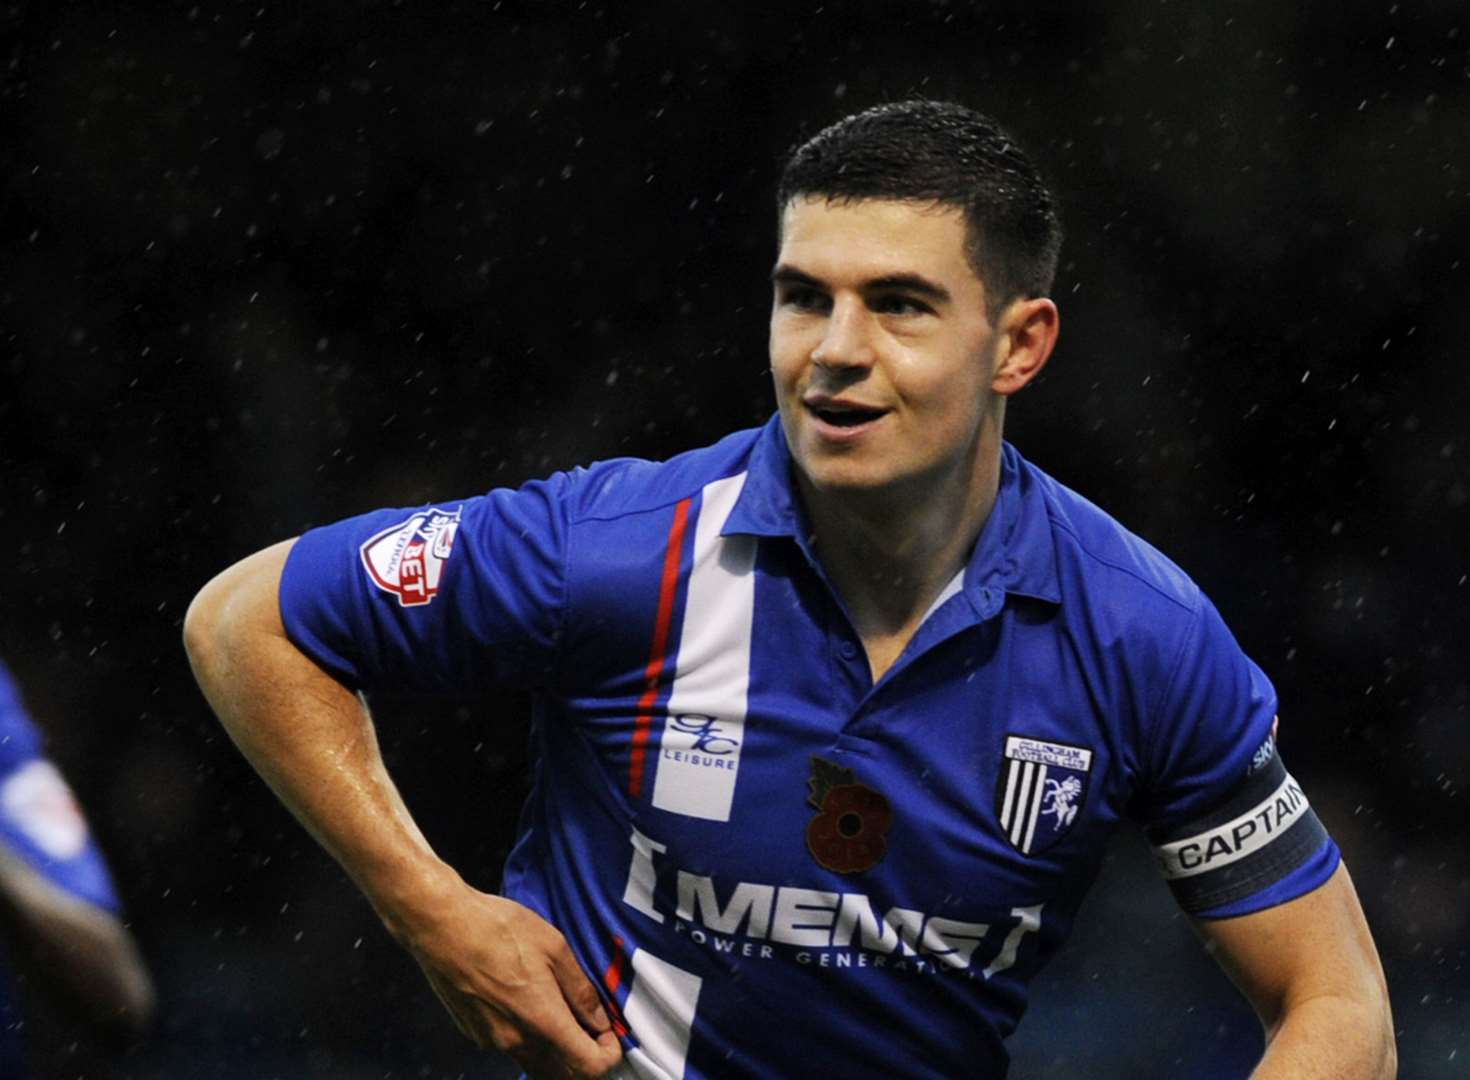 Egan closing on Gills return